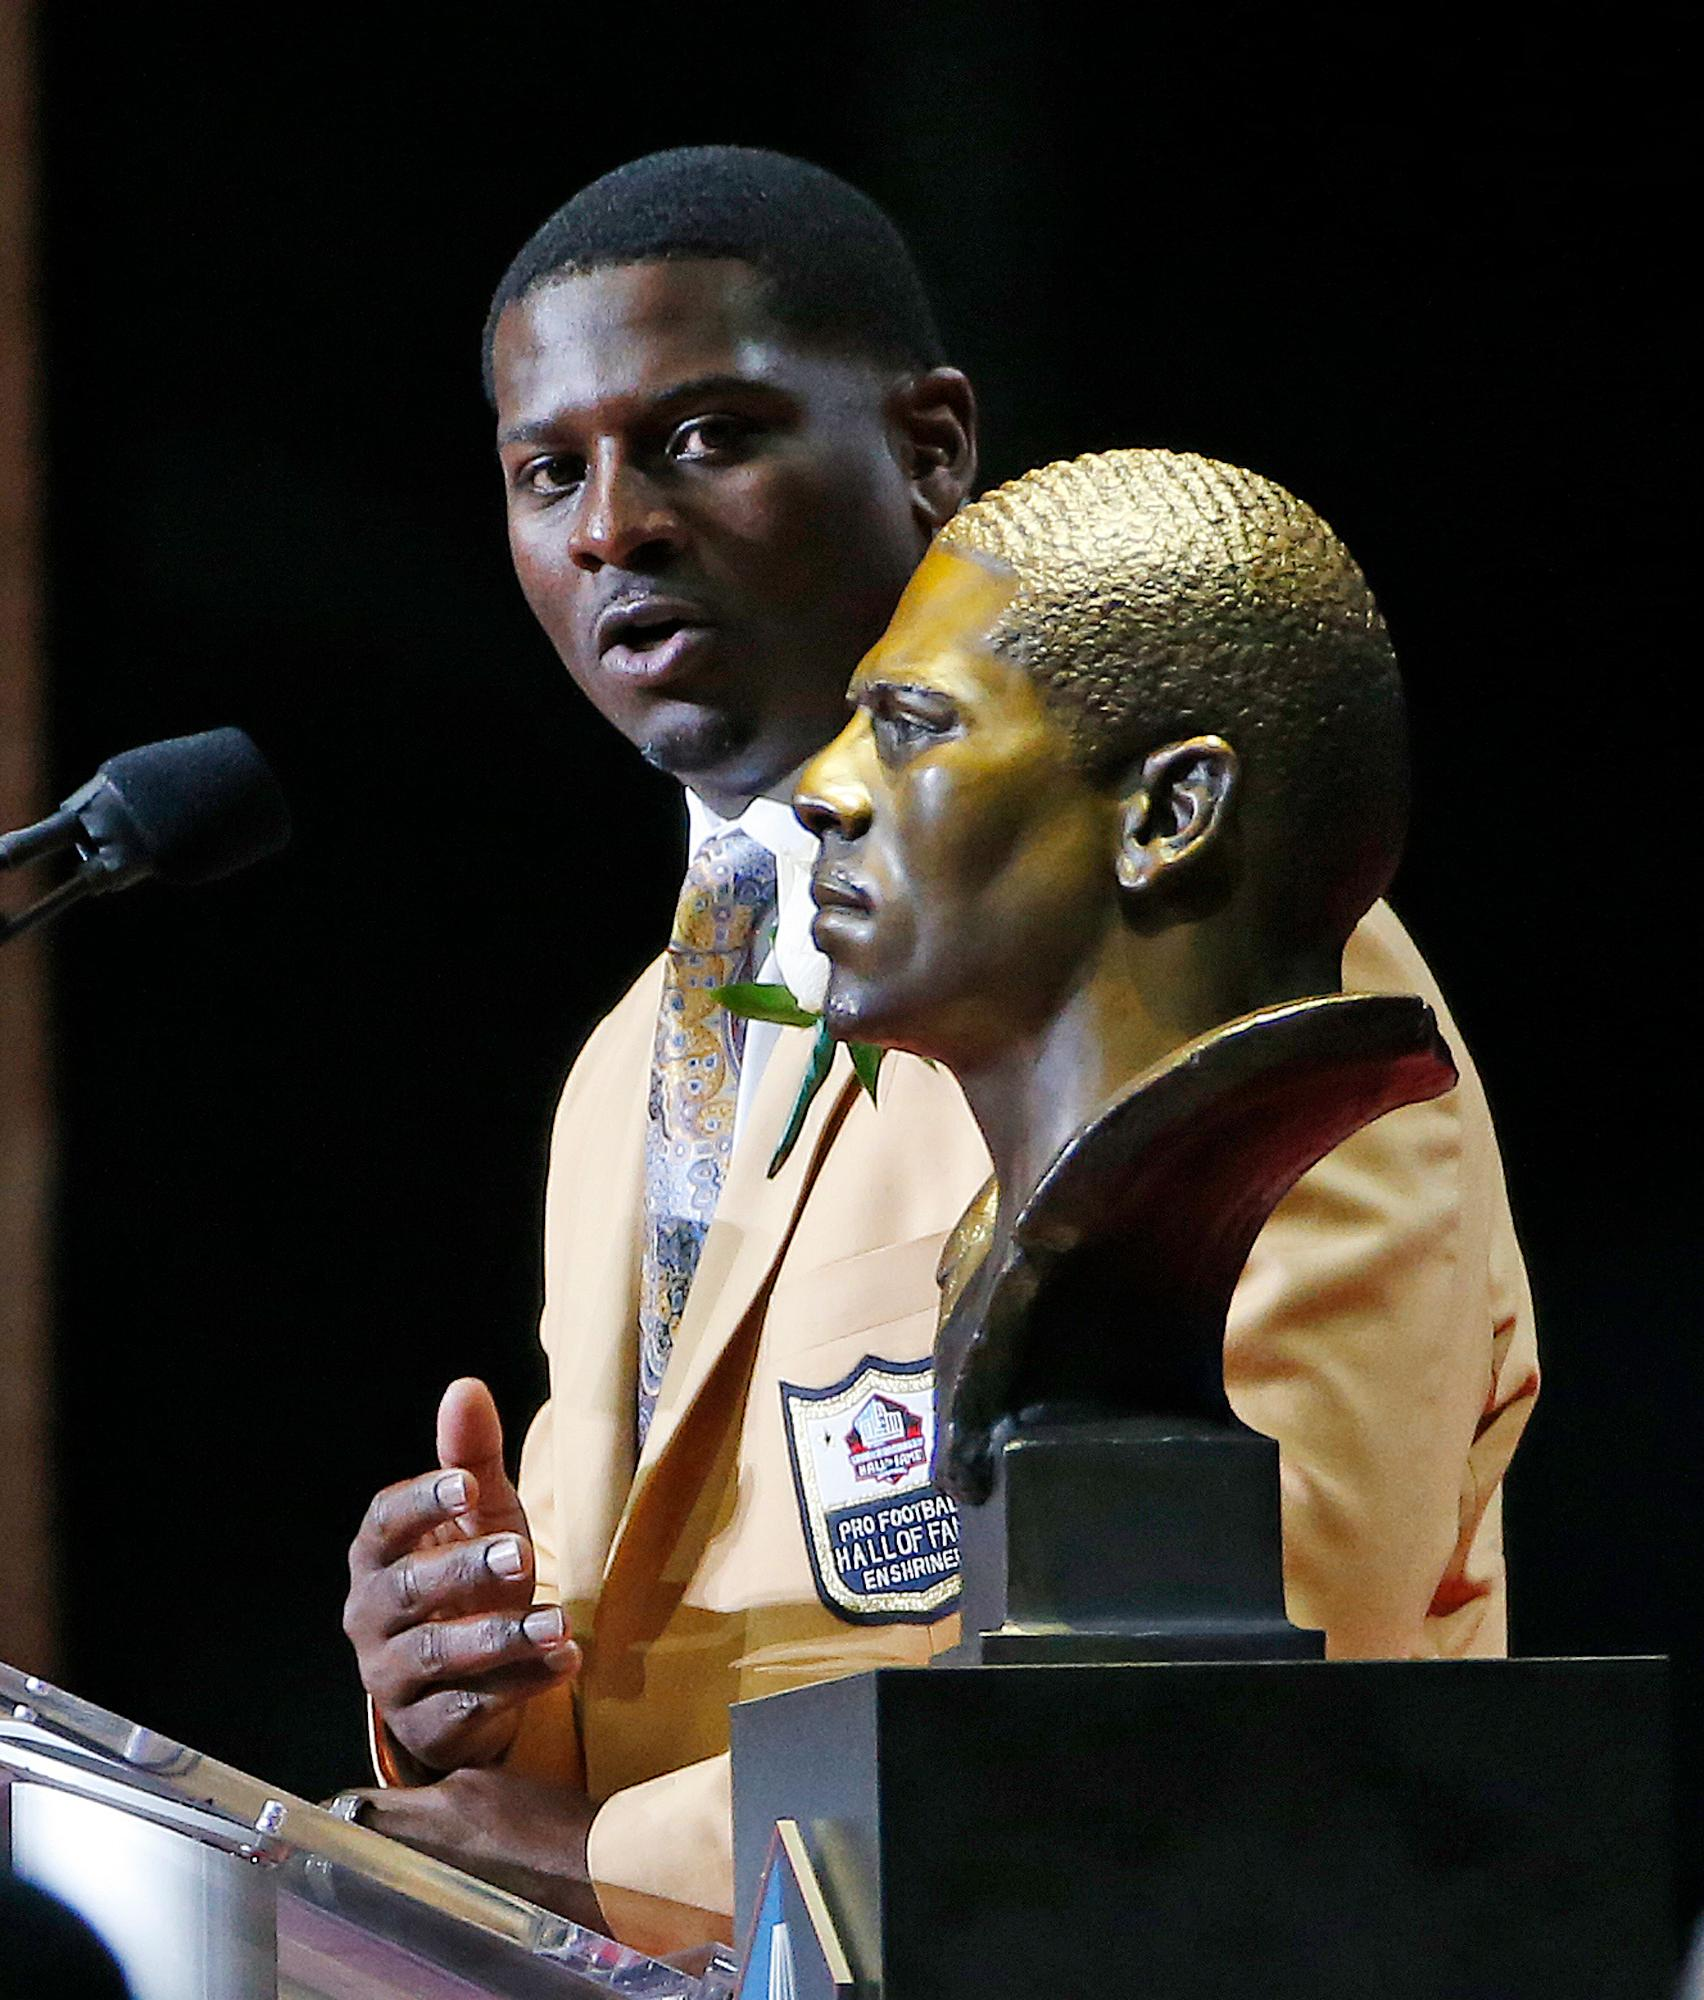 LaDainian Tomlinson speaks next to a bust of him at the Pro Football Hall of Fame inductions Saturday, Aug. 5, 2017, in Canton, Ohio. (AP Photo/Ron Schwane)